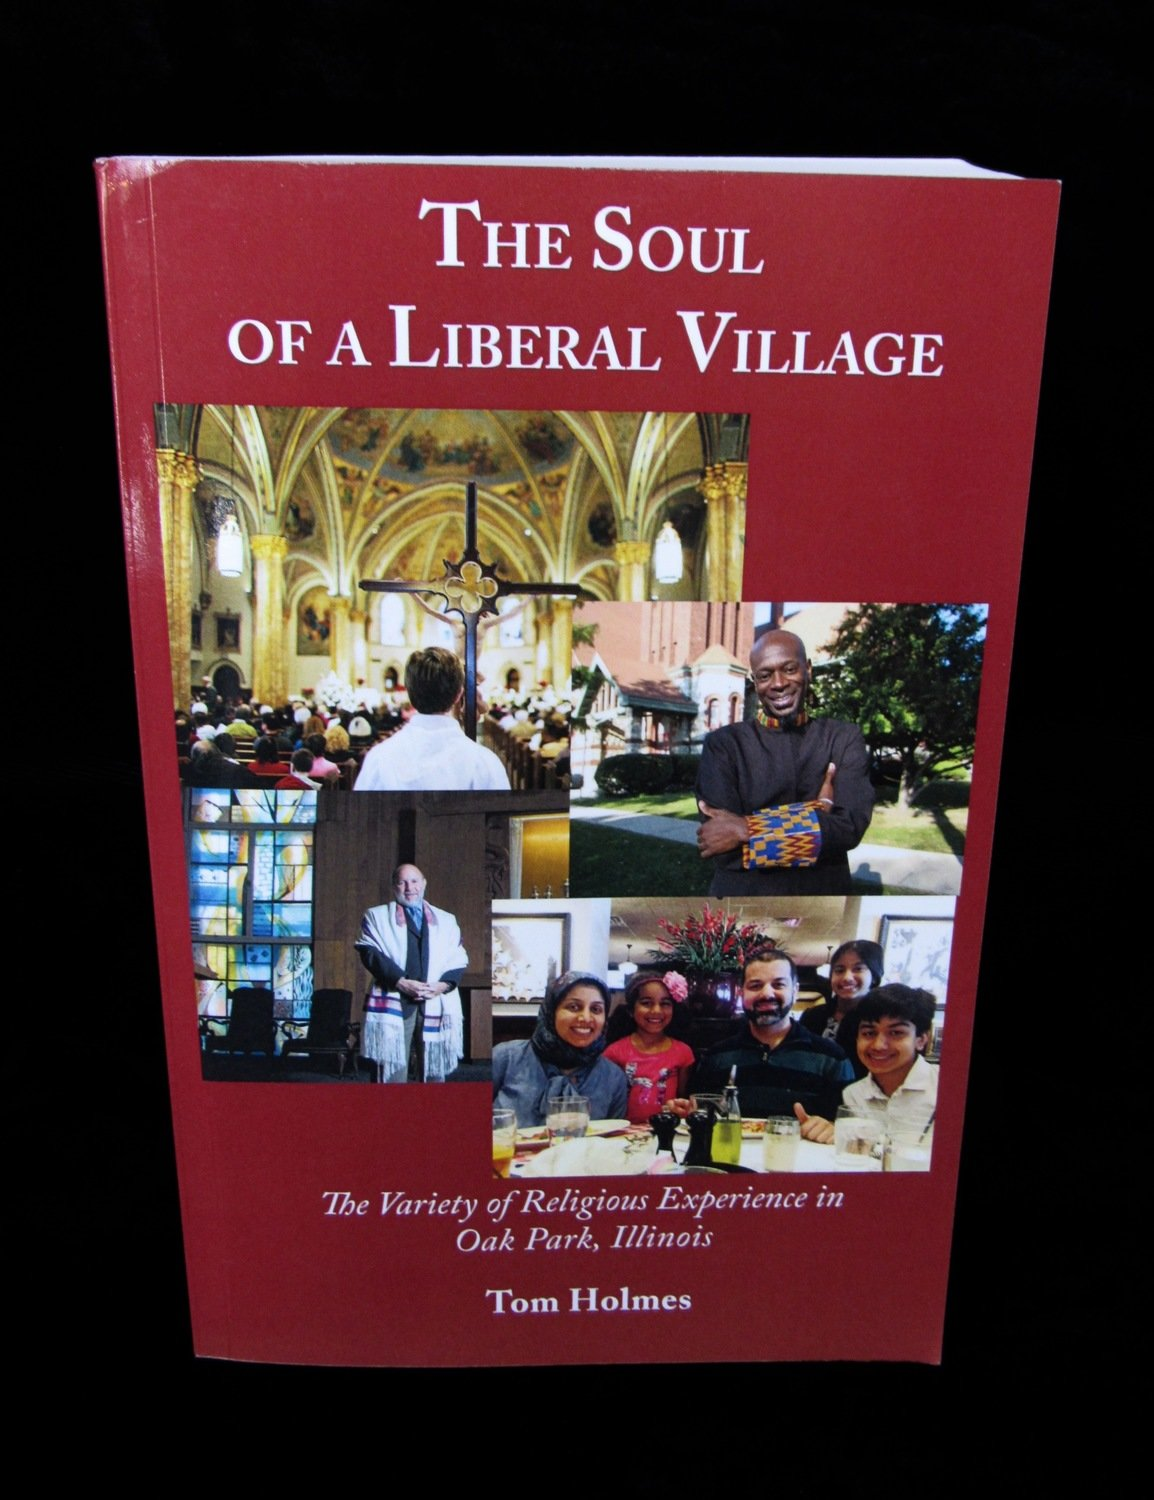 The Soul of a Liberal Village